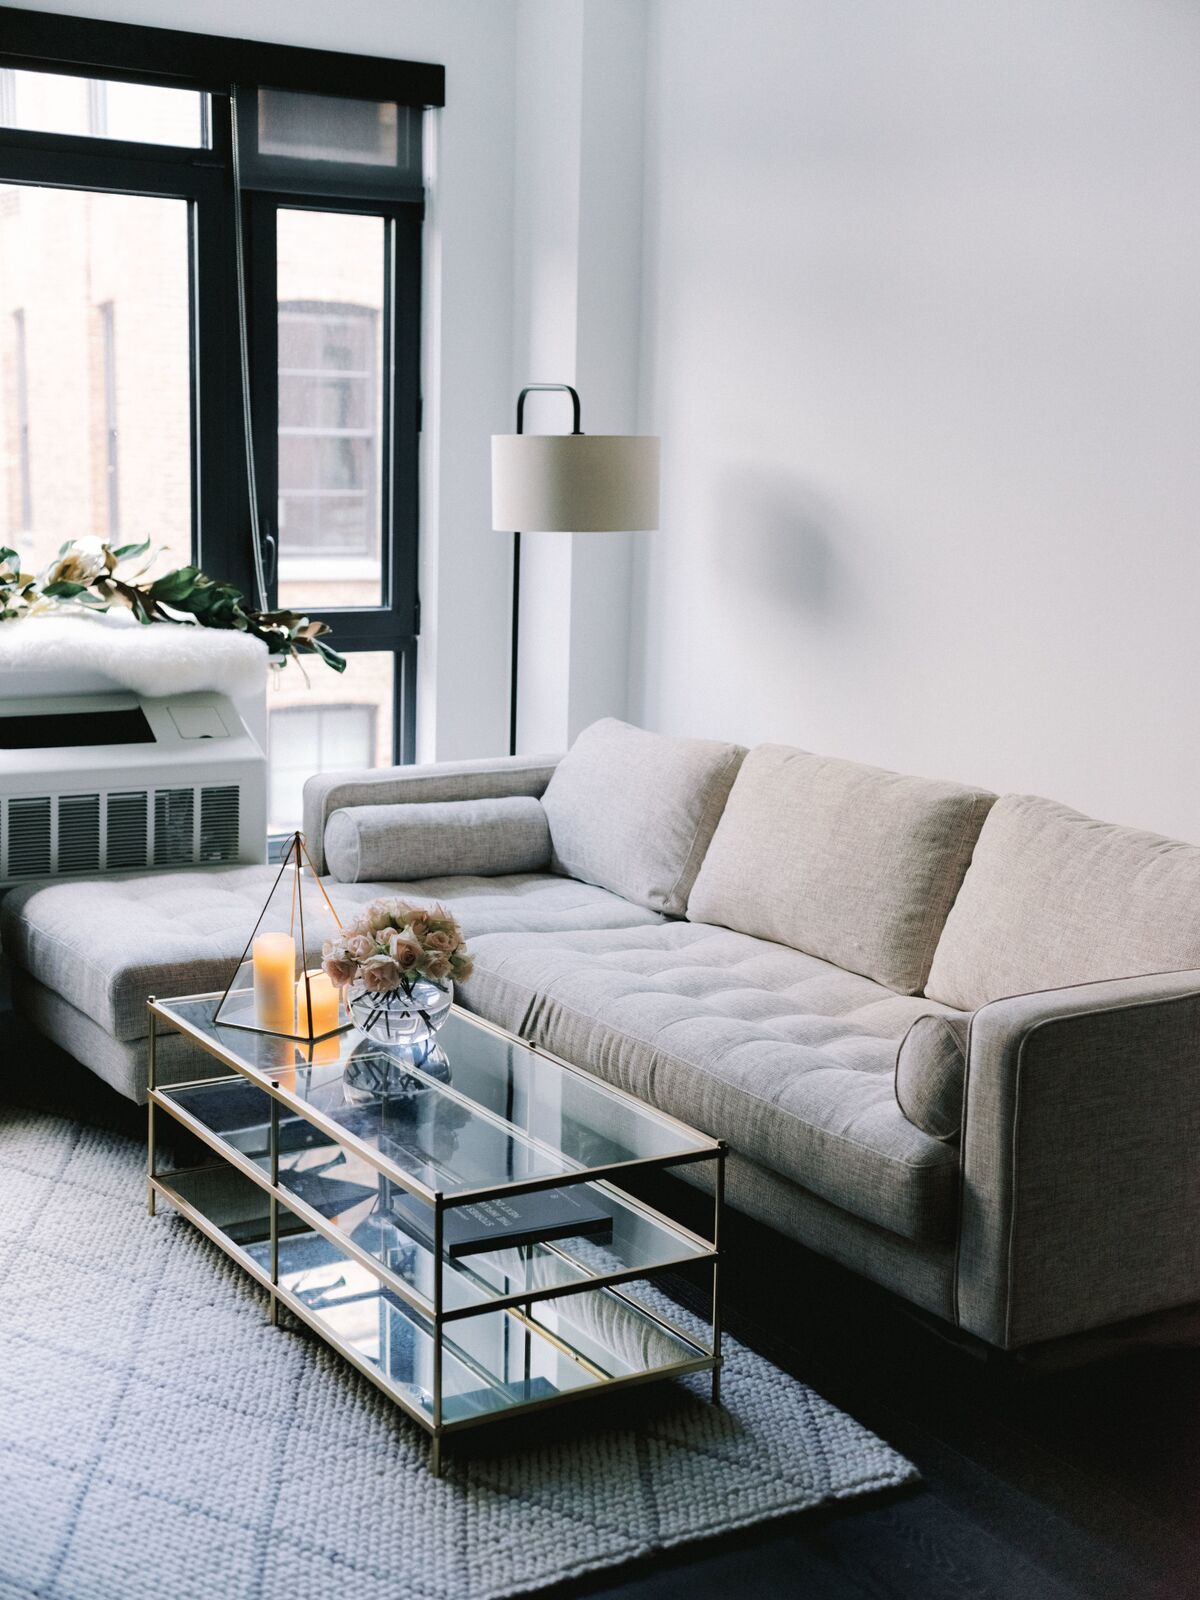 New Brooklyn Apartment! — With Love, Caila